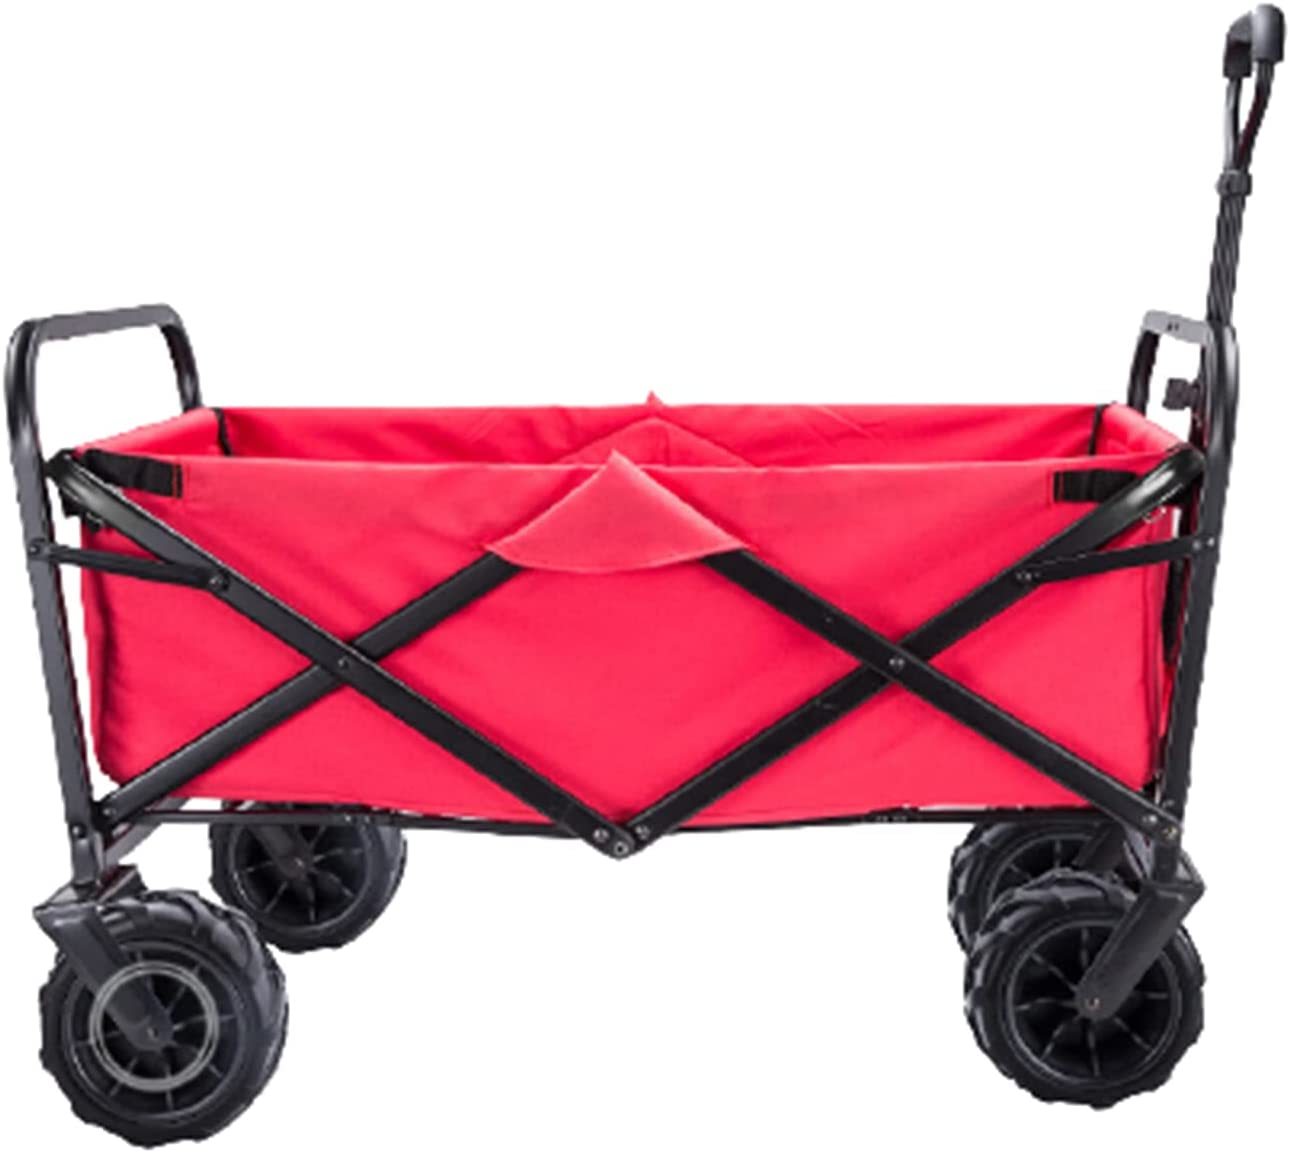 Garden Carts Folding Shopping Trolley Portable Four-Wheeled Trolley Camping Trolley,Red